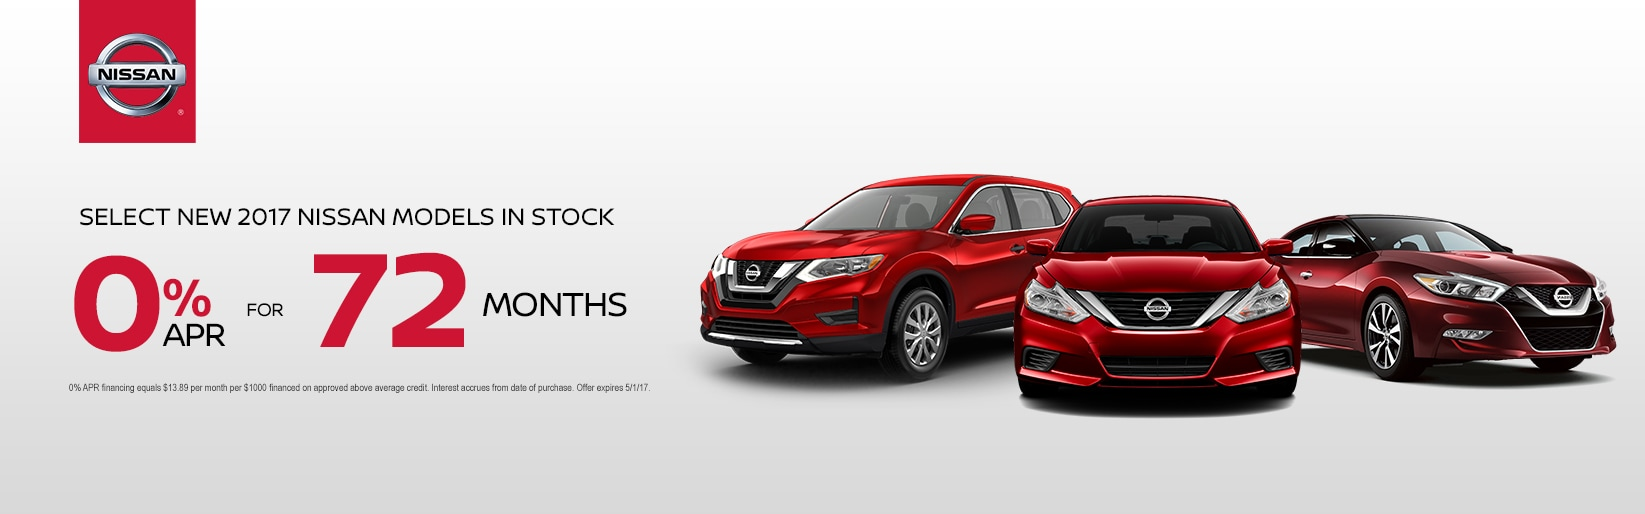 nissan dealership near me in lewisville autonation nissan lewisville showroom hours